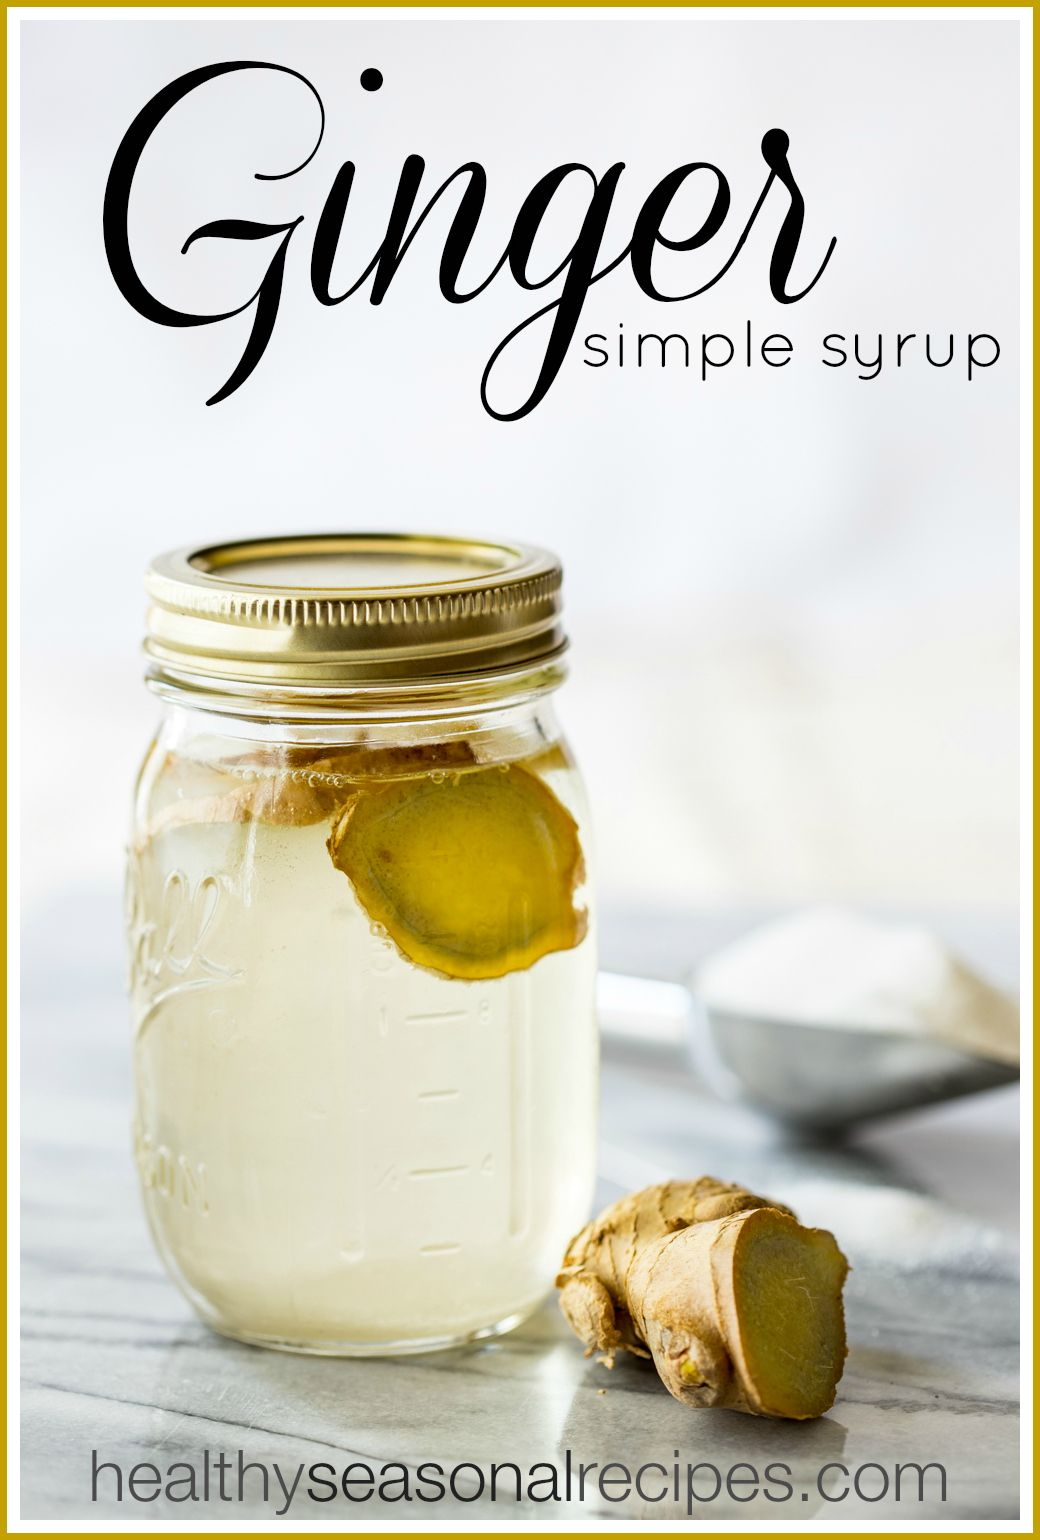 Thursday Things Ginger Simple Syrup Recipe Simple Syrup Simple Syrup Recipes Seasoning Recipes